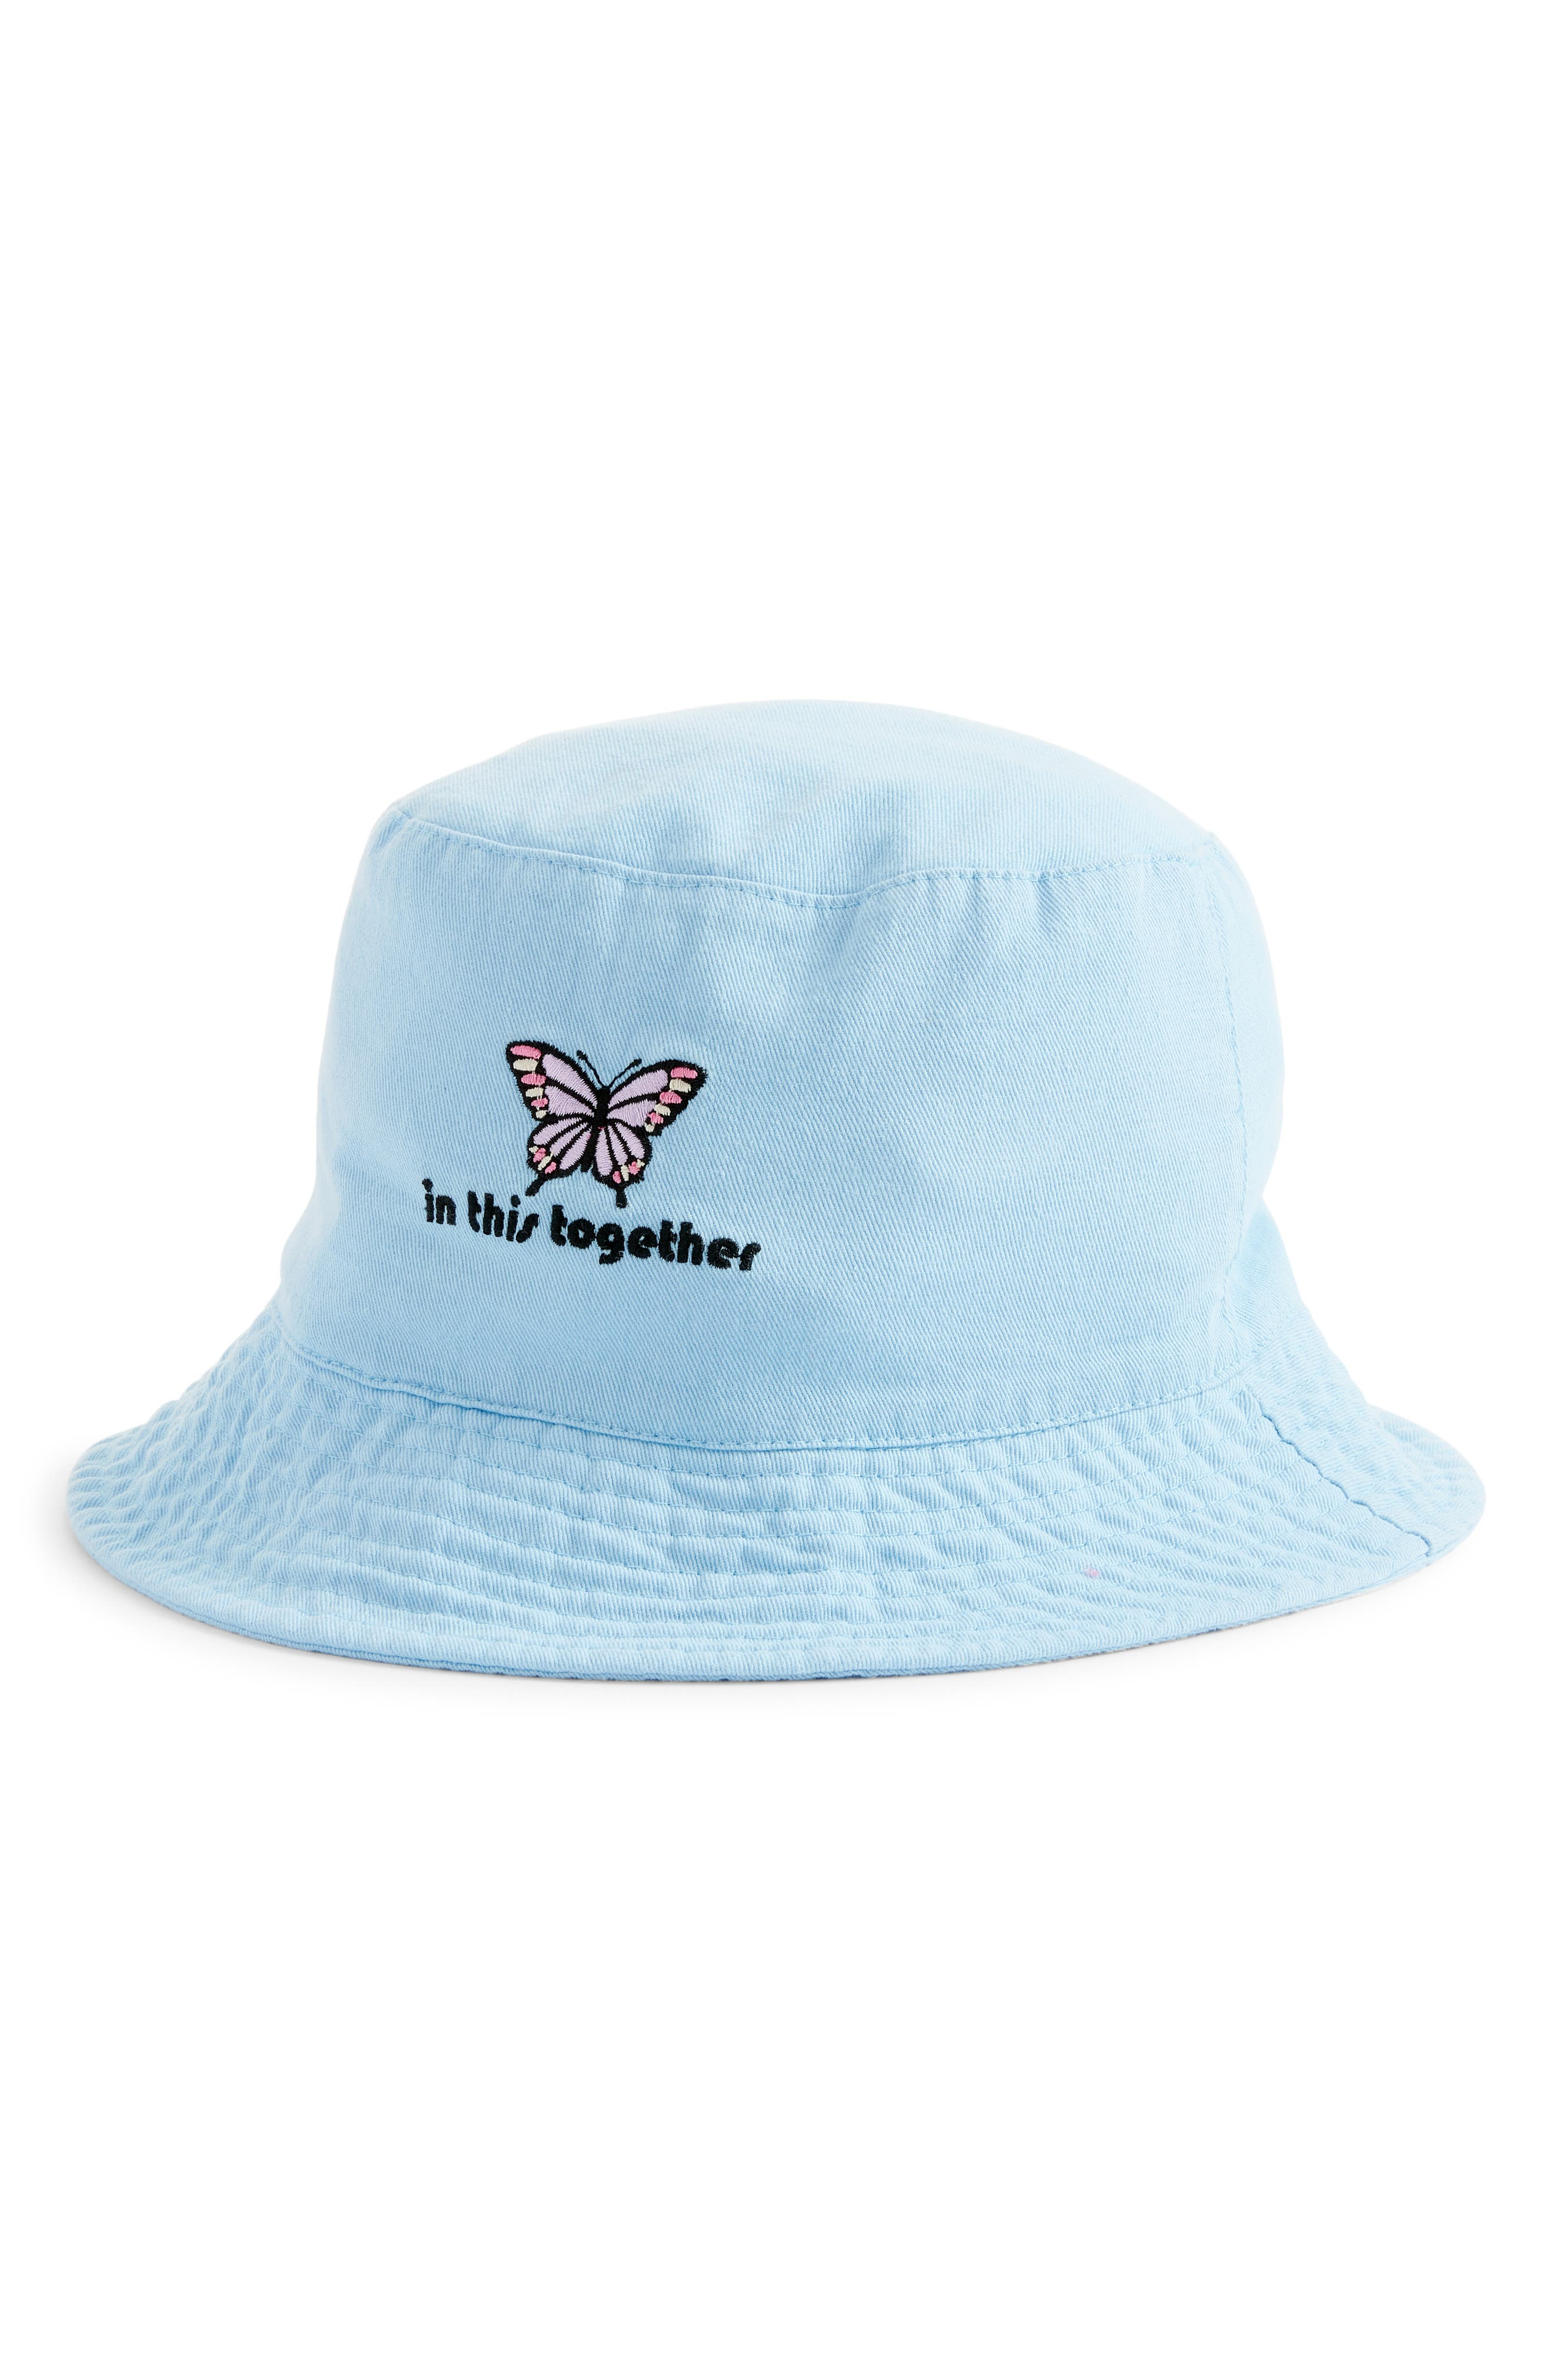 Bp. COTTON EMBROIDERED BUCKET HAT